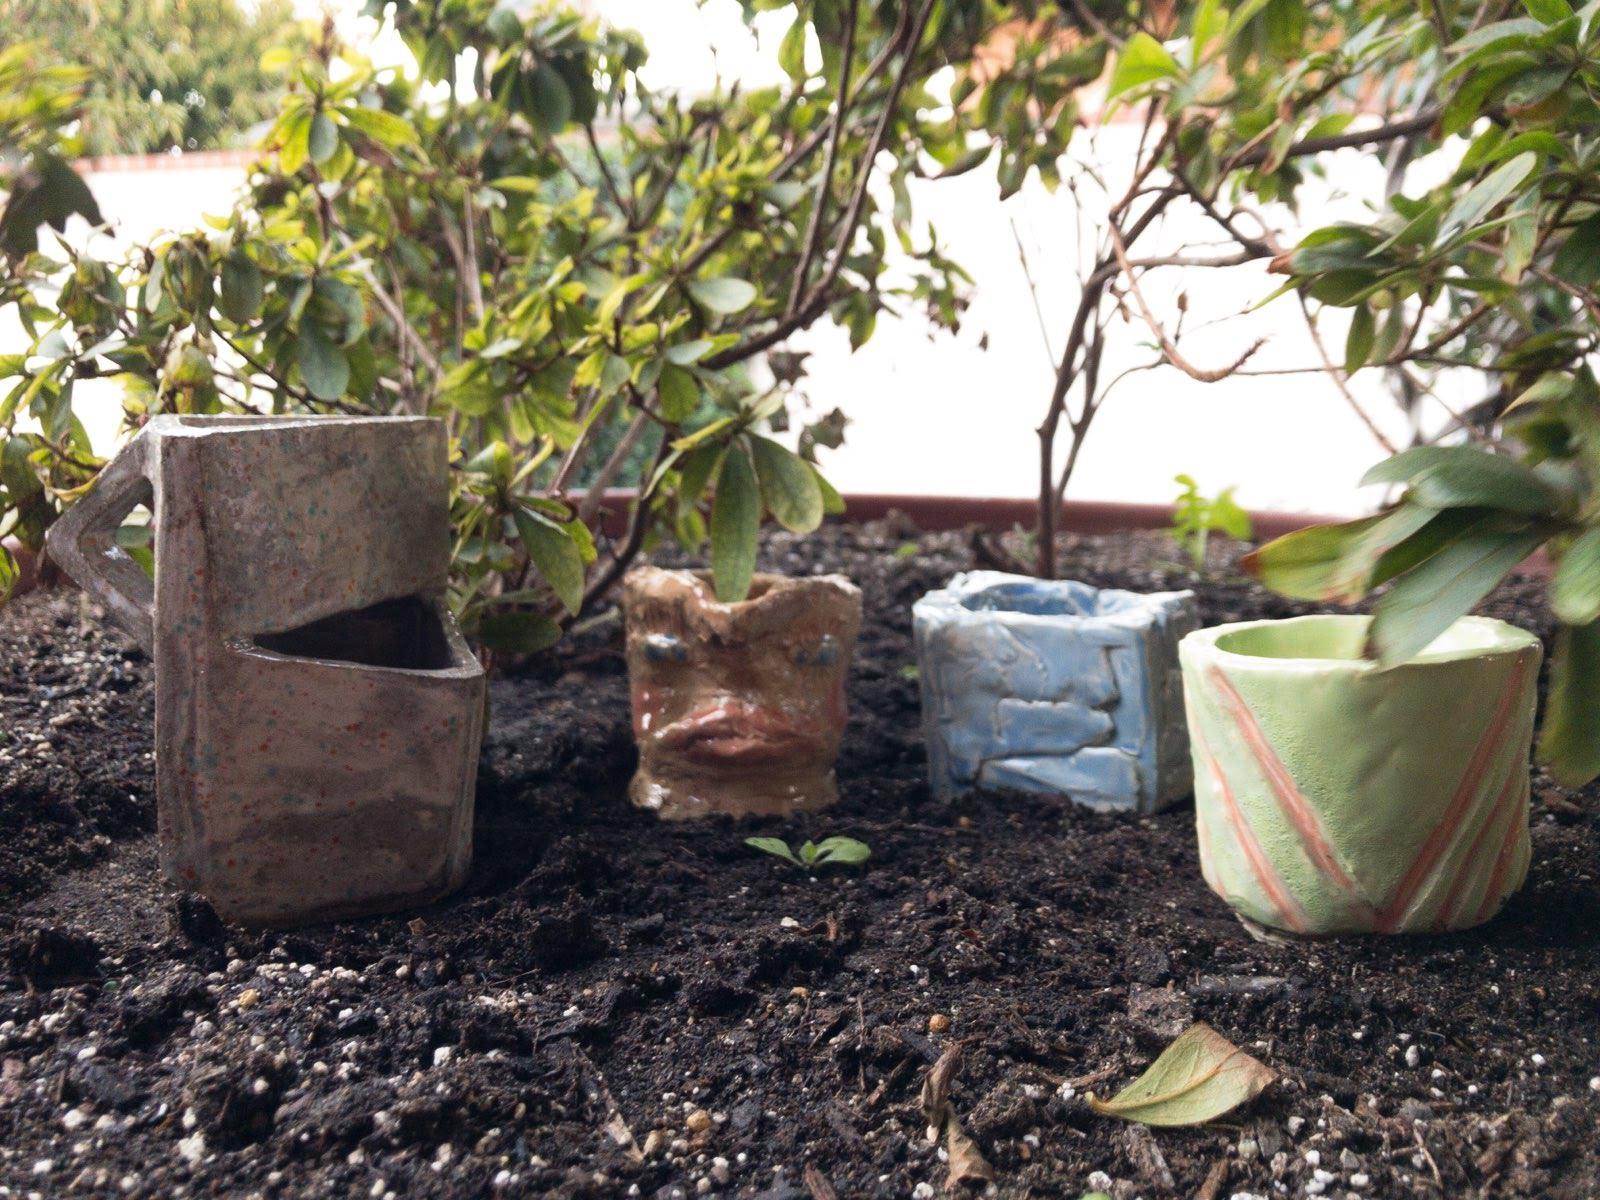 Variety of Cups and Pots in the Garden